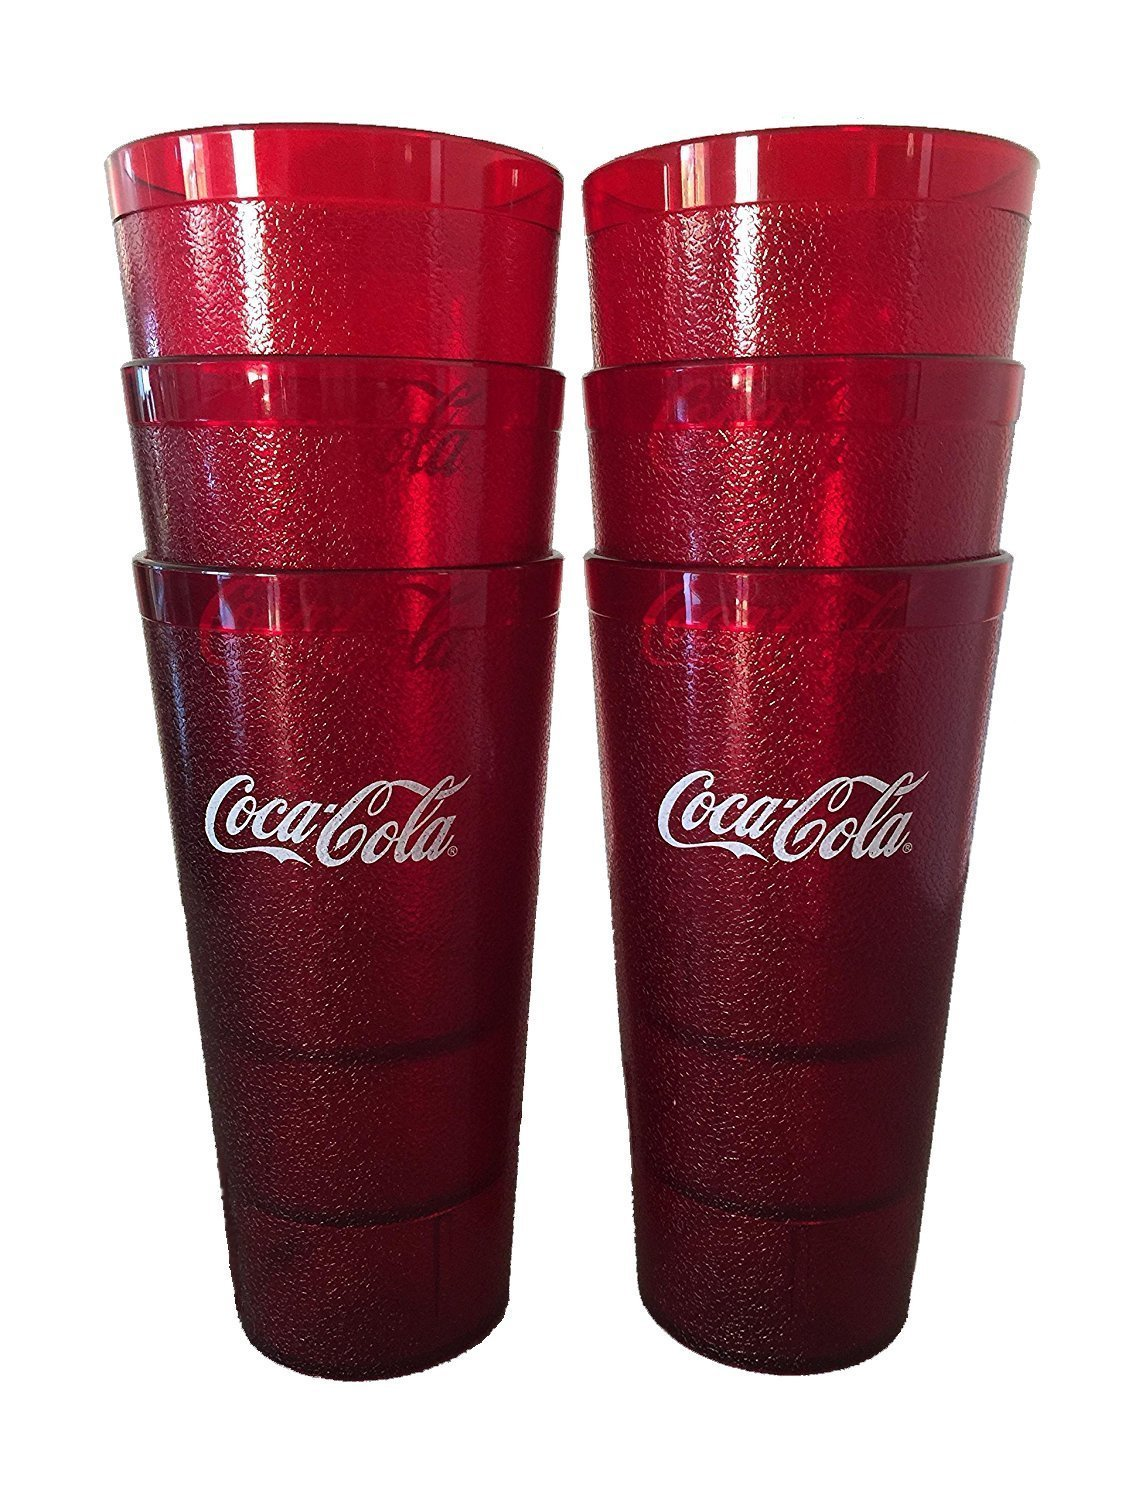 Coca-Cola Cups, Red Plastic Tumbler 32-Ounce Restaurant Grade, Carlisle, Set of 6